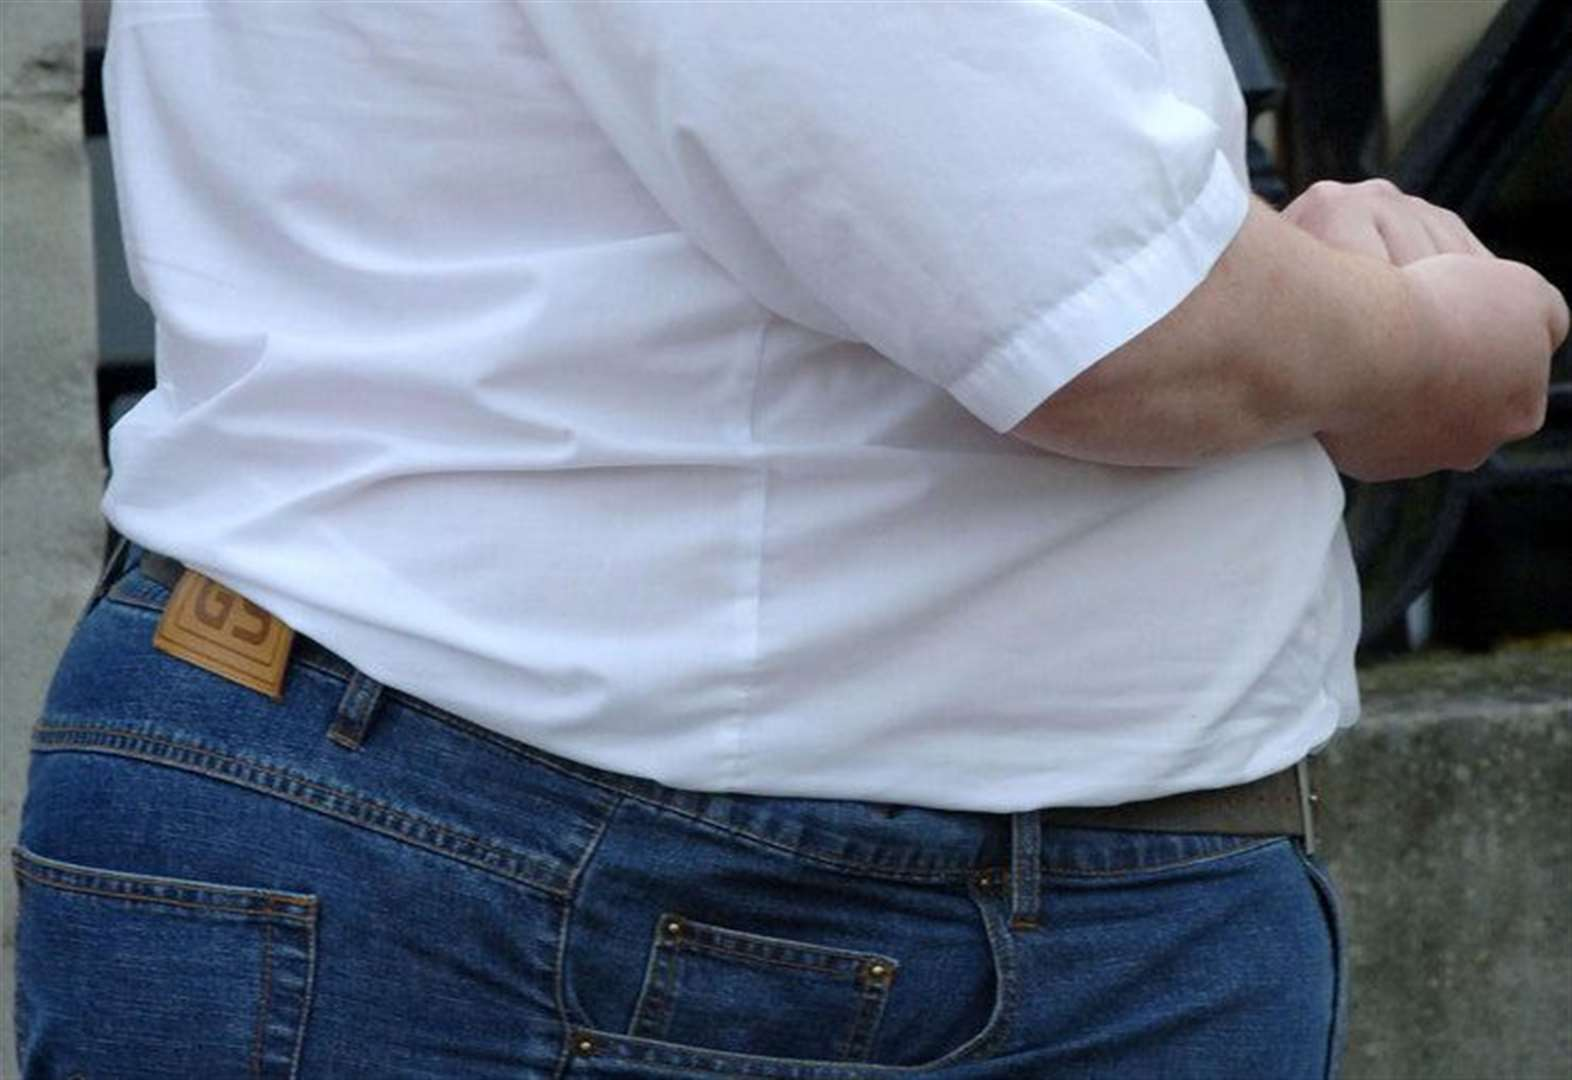 Rate of obese hospital patients down in Cambridgeshire